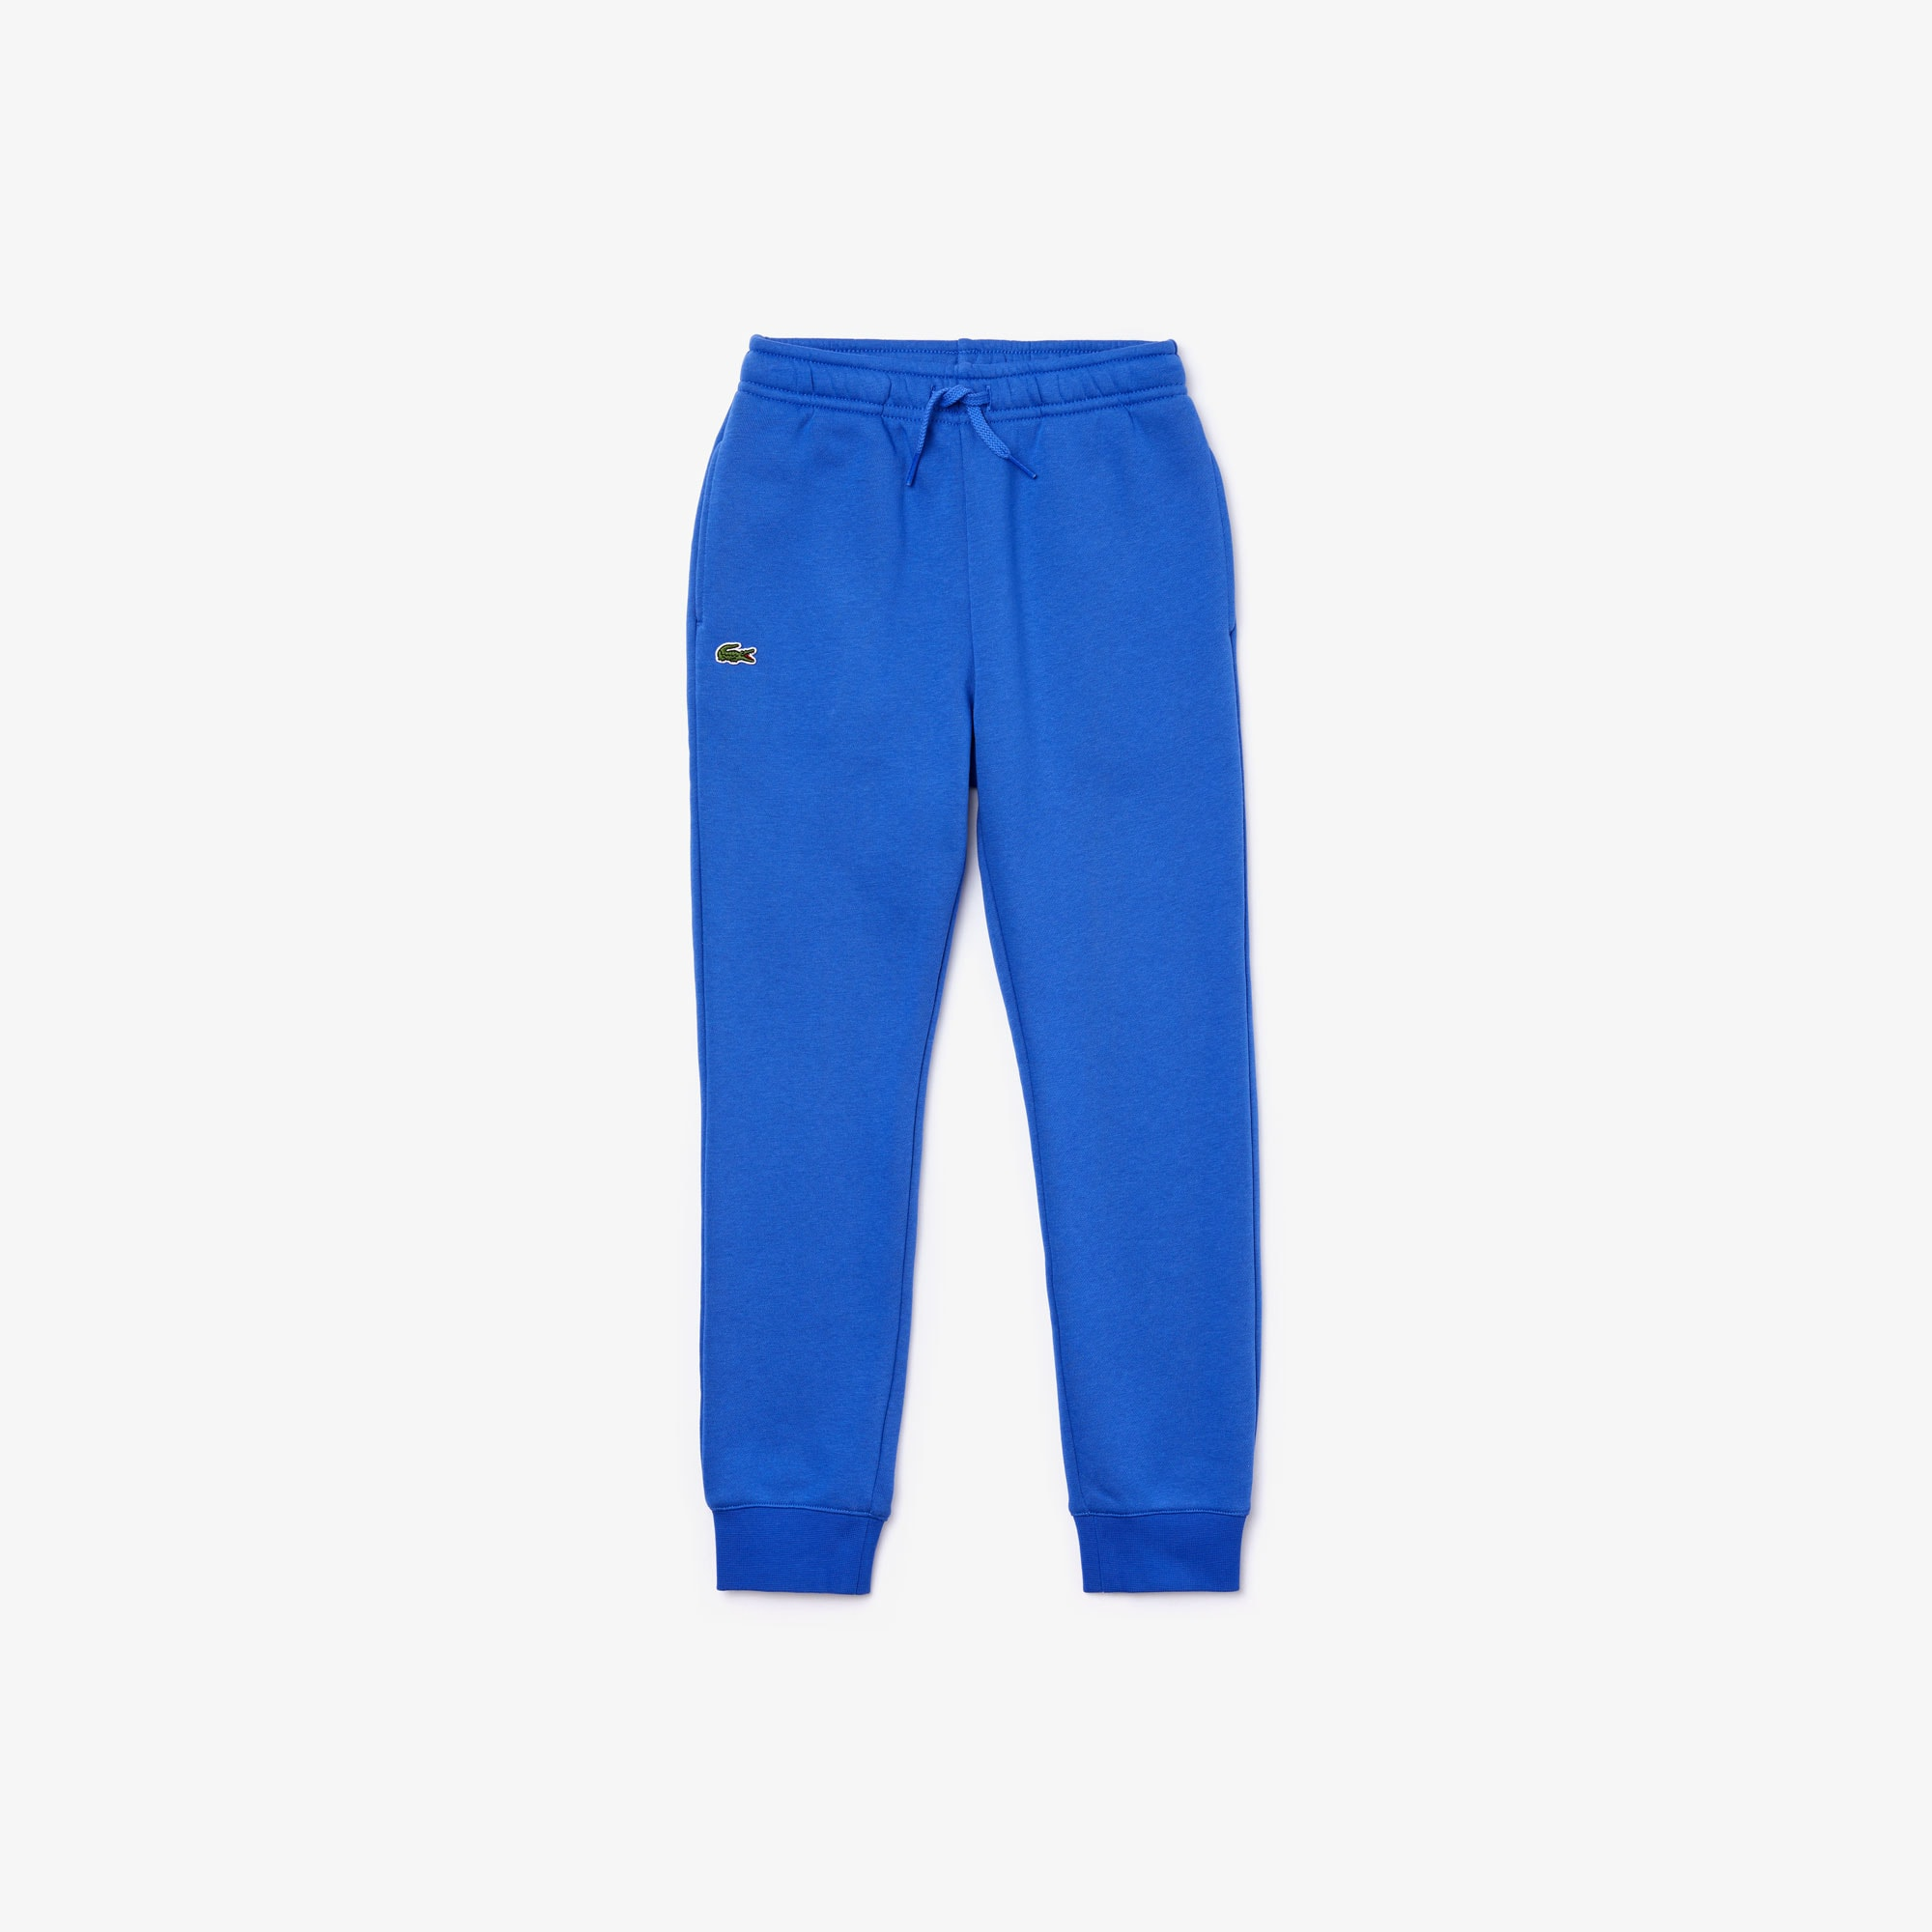 Boys' Lacoste SPORT Fleece Sweatpants